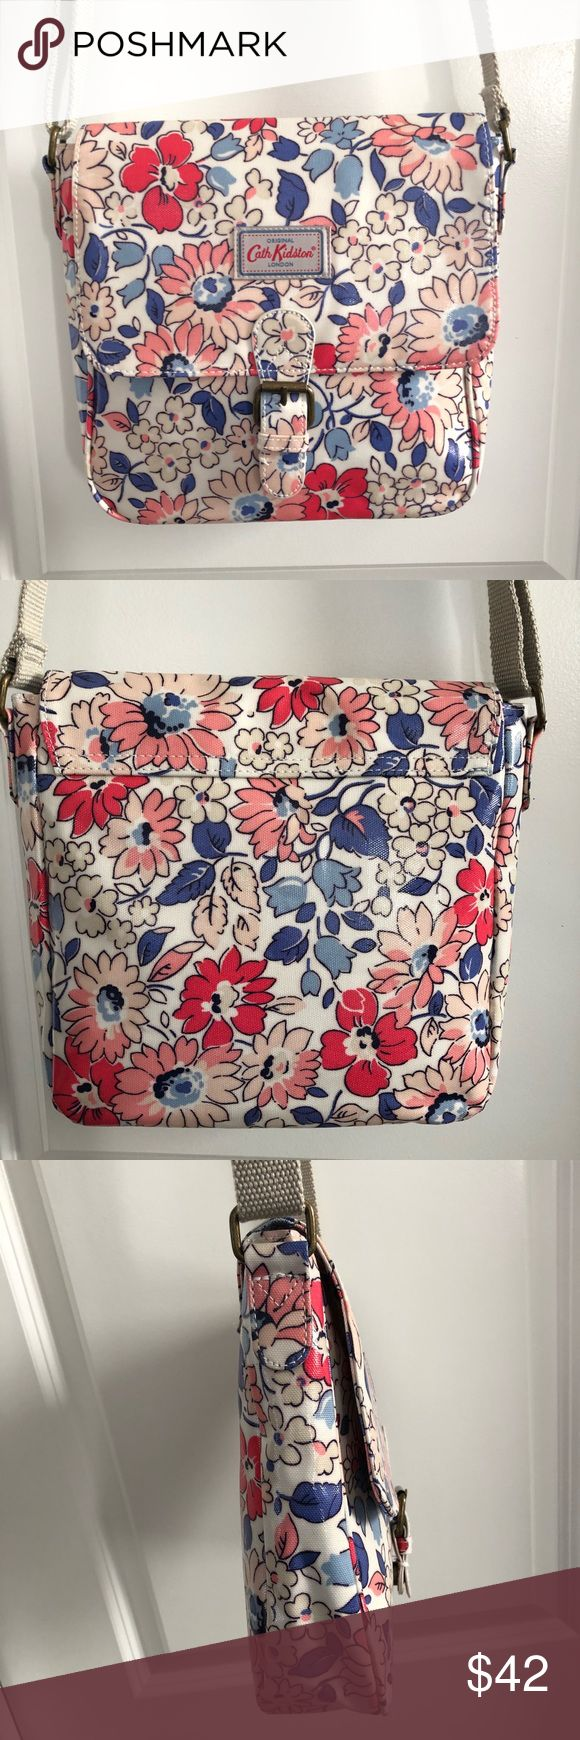 "Cath Kidston Floral Coated Canvas Crossbody Bag Blue, pink and blush florals on a cream background with tan adjustable strap. Fold over snap closure (buckle is decorative). One inside zip pocket. Coated cotton pvc makes it easy to keep clean. Ordered from Cath Kidston store in London. Like new, only used once. Great pops of color for Spring and Summer.  Measures approx 10""x10"". Depth approx 2 1/2"". Cath Kidston Bags Crossbody Bags"